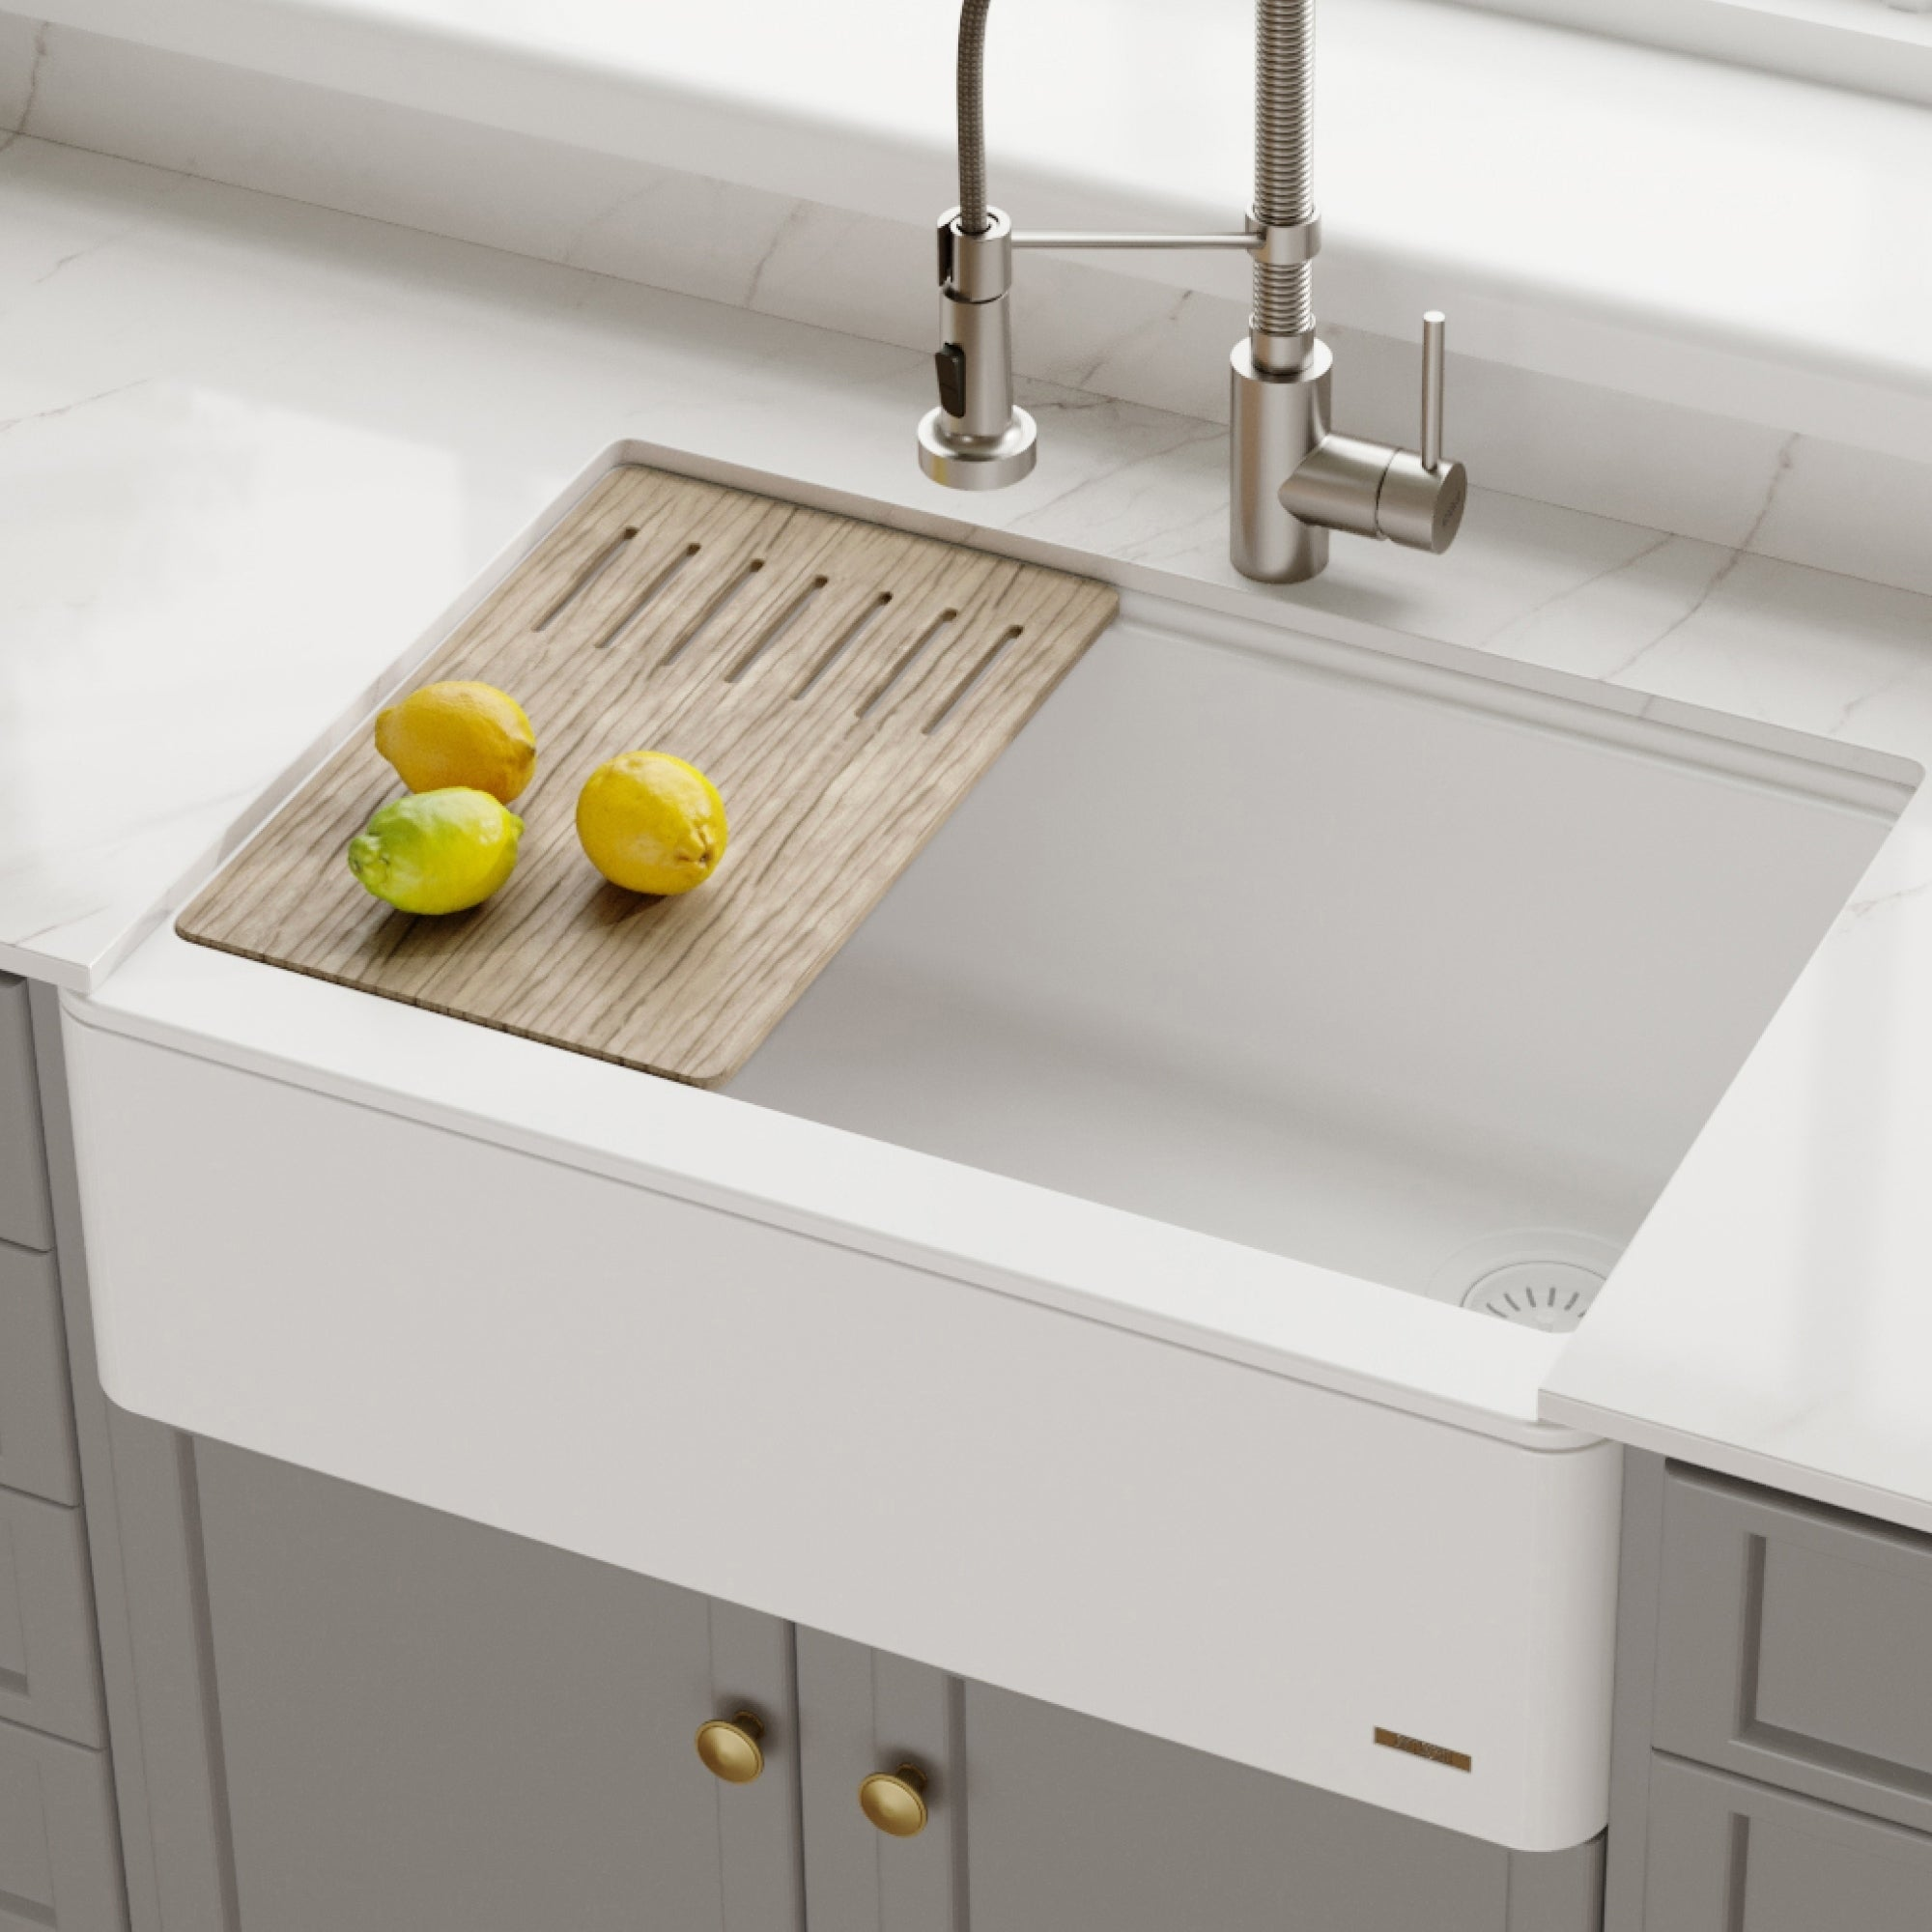 KRAUS Bellucci 30-in CeramTek Granite Composite Farmhouse Kitchen Sink